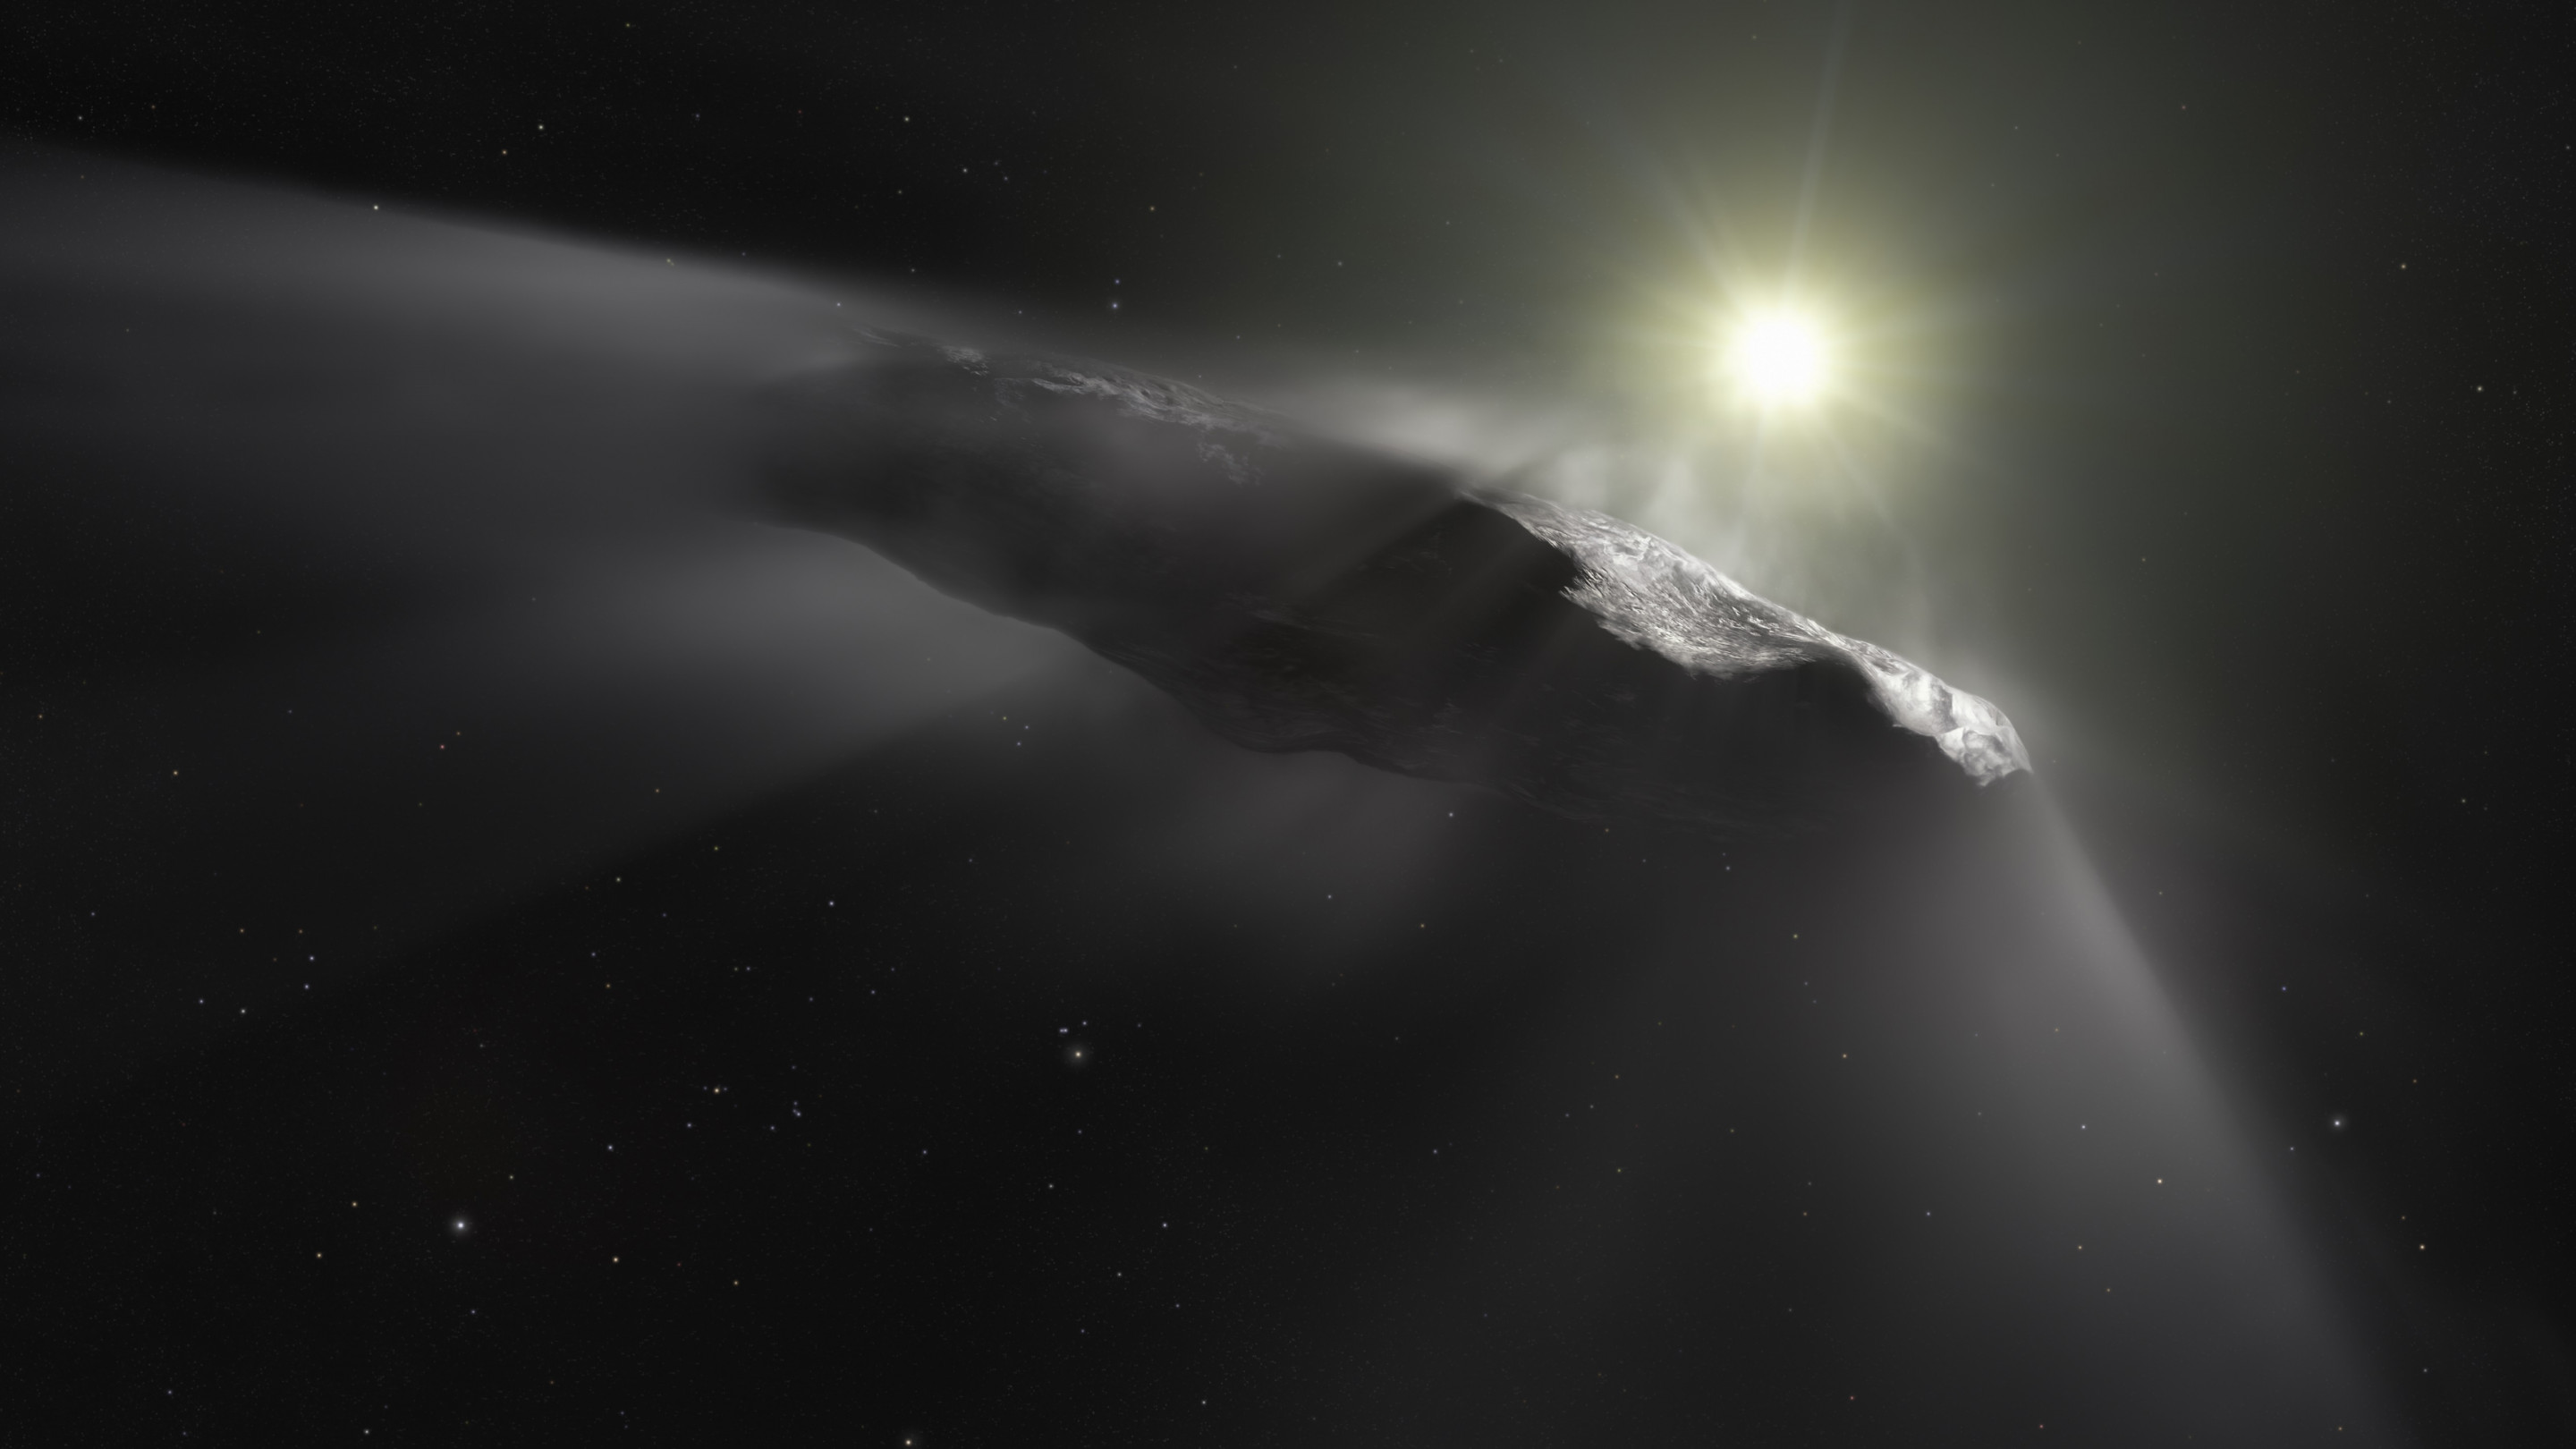 Oumuamua asteroid wallpaper 2880x1620